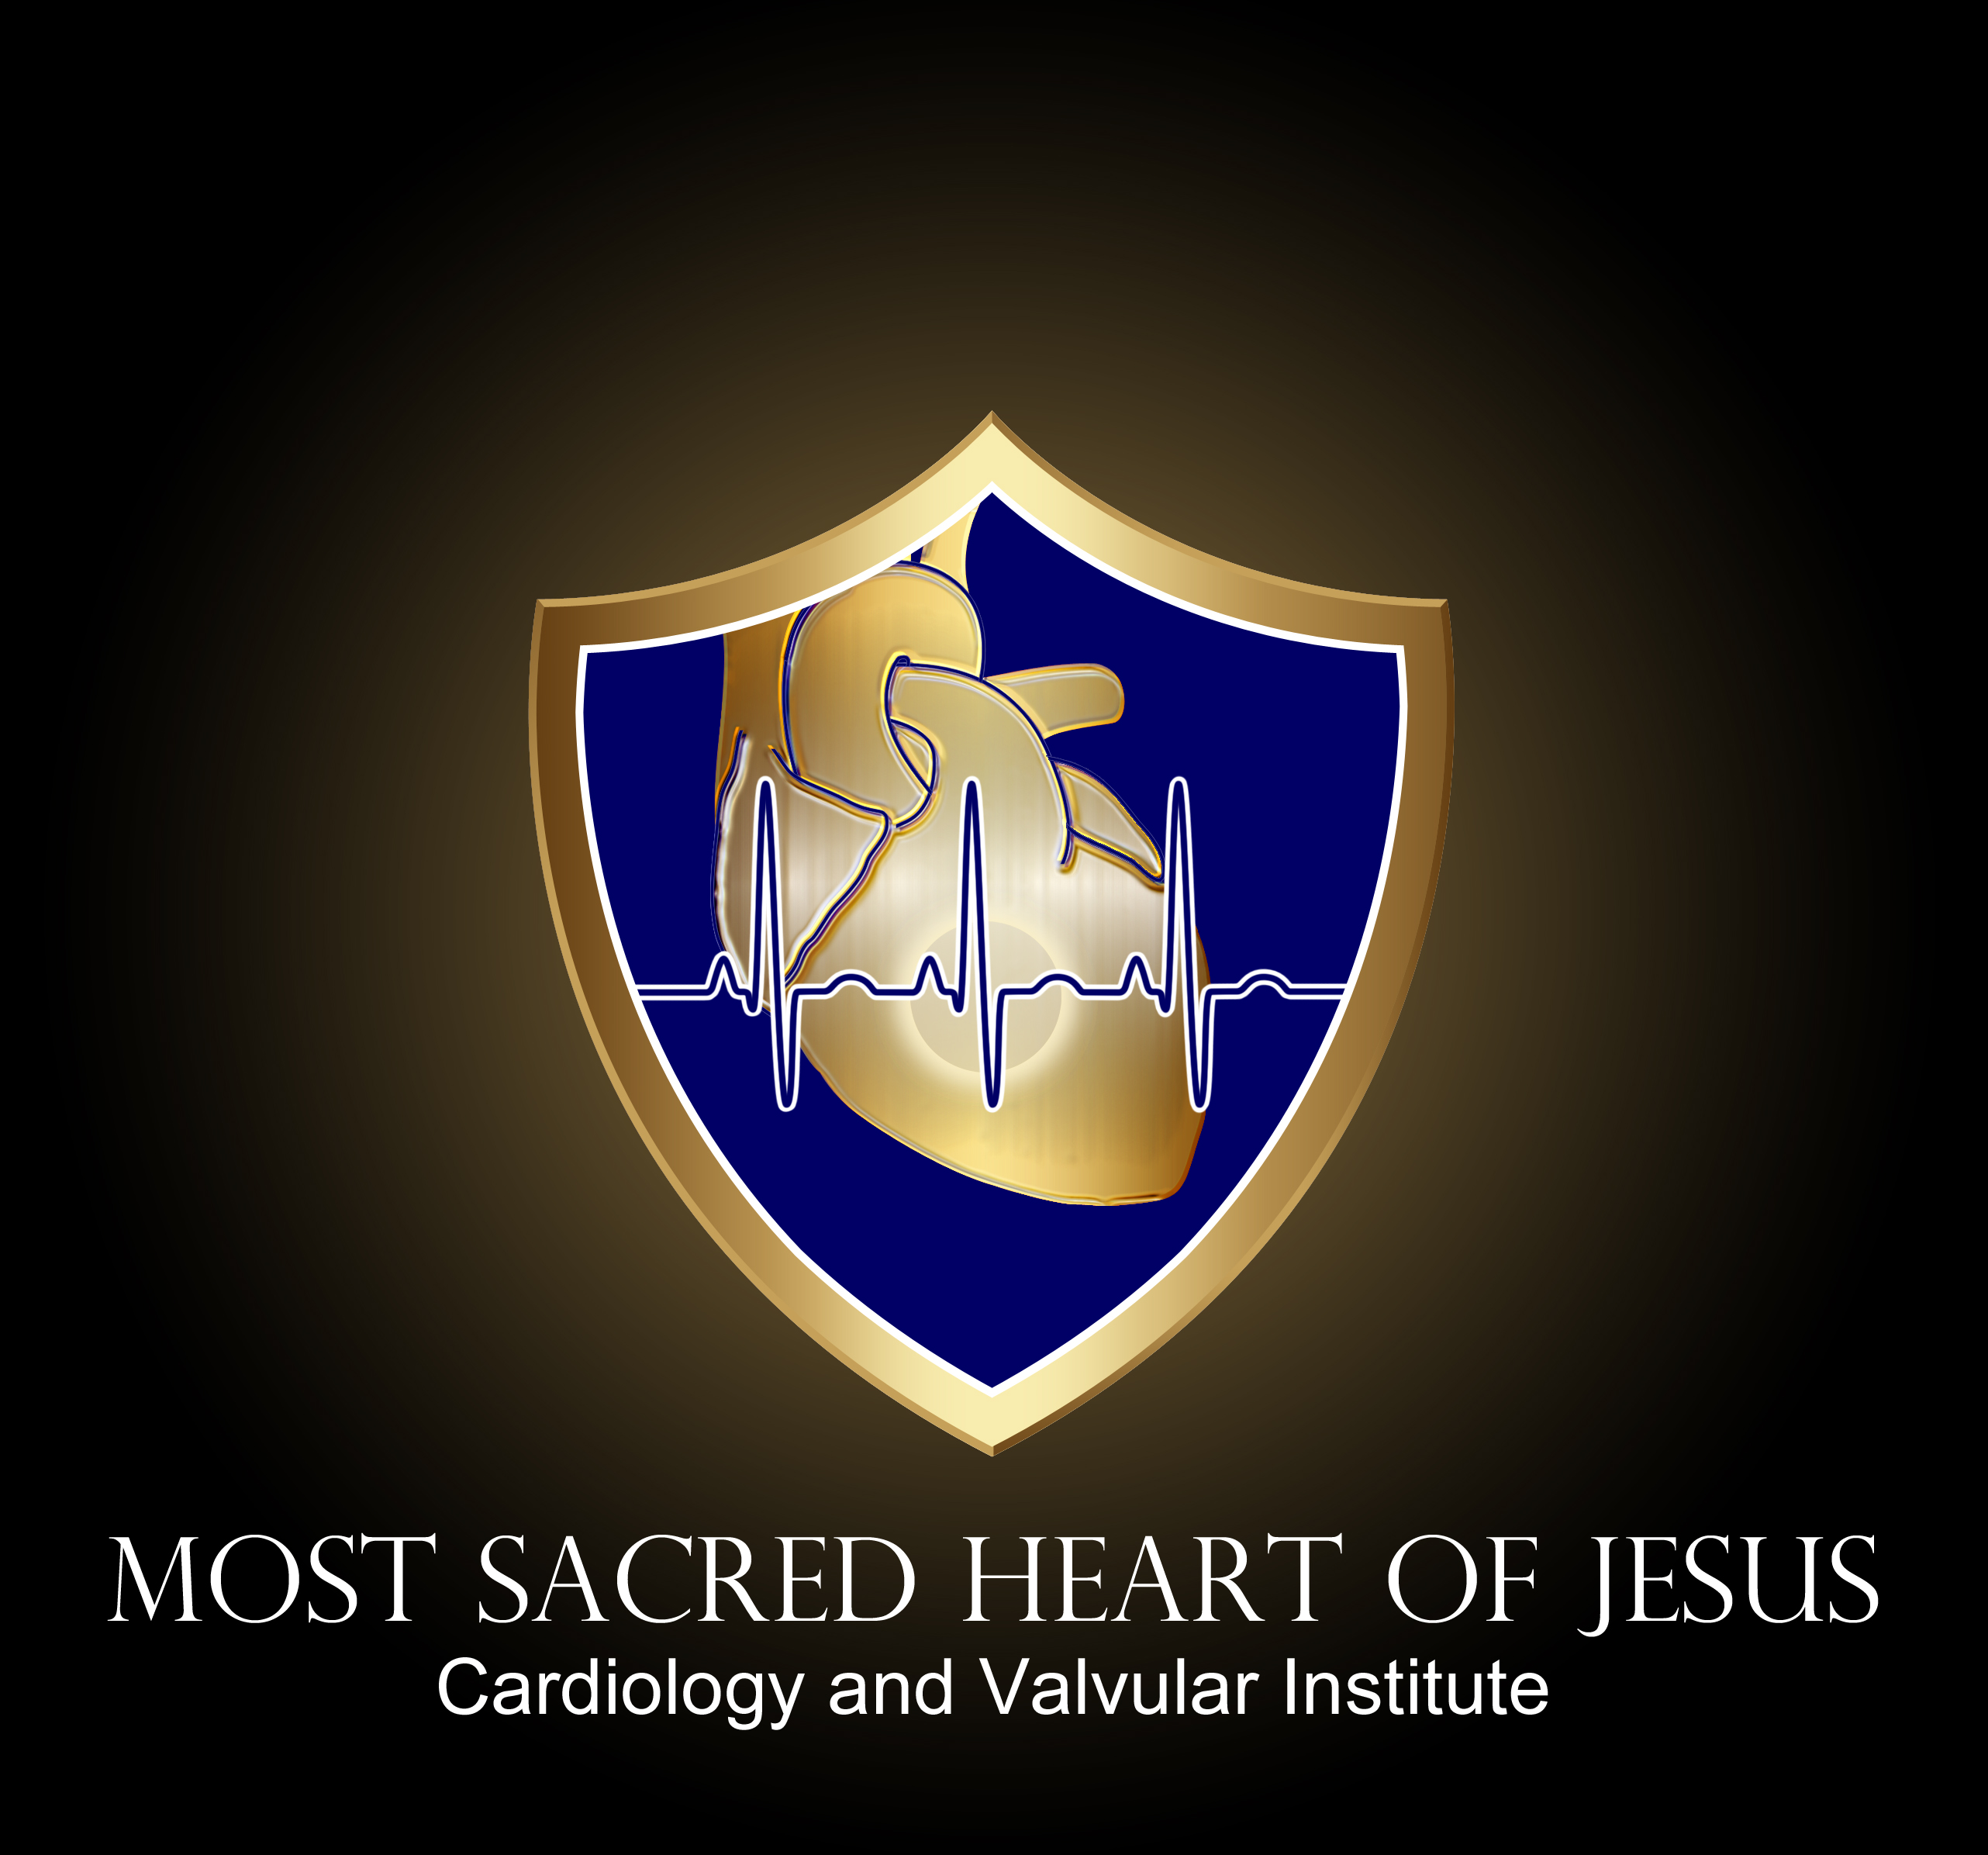 Most Sacred Heart of Jesus Cardiology and Valvular Institute